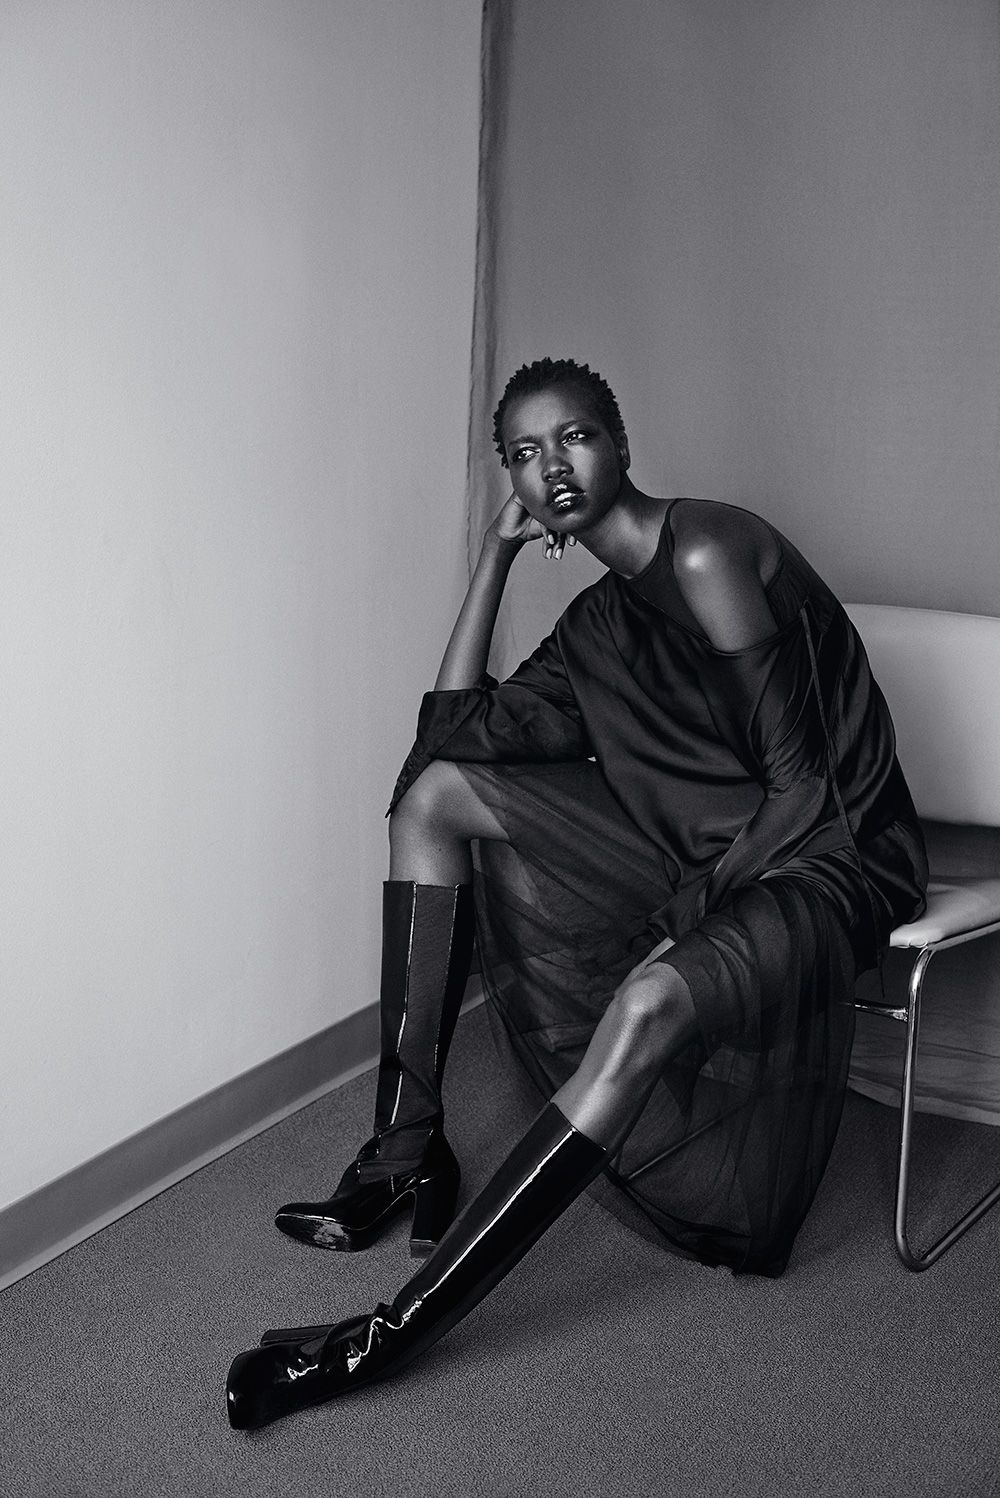 Photo of model nykhor paul in office setting image of black and white photo